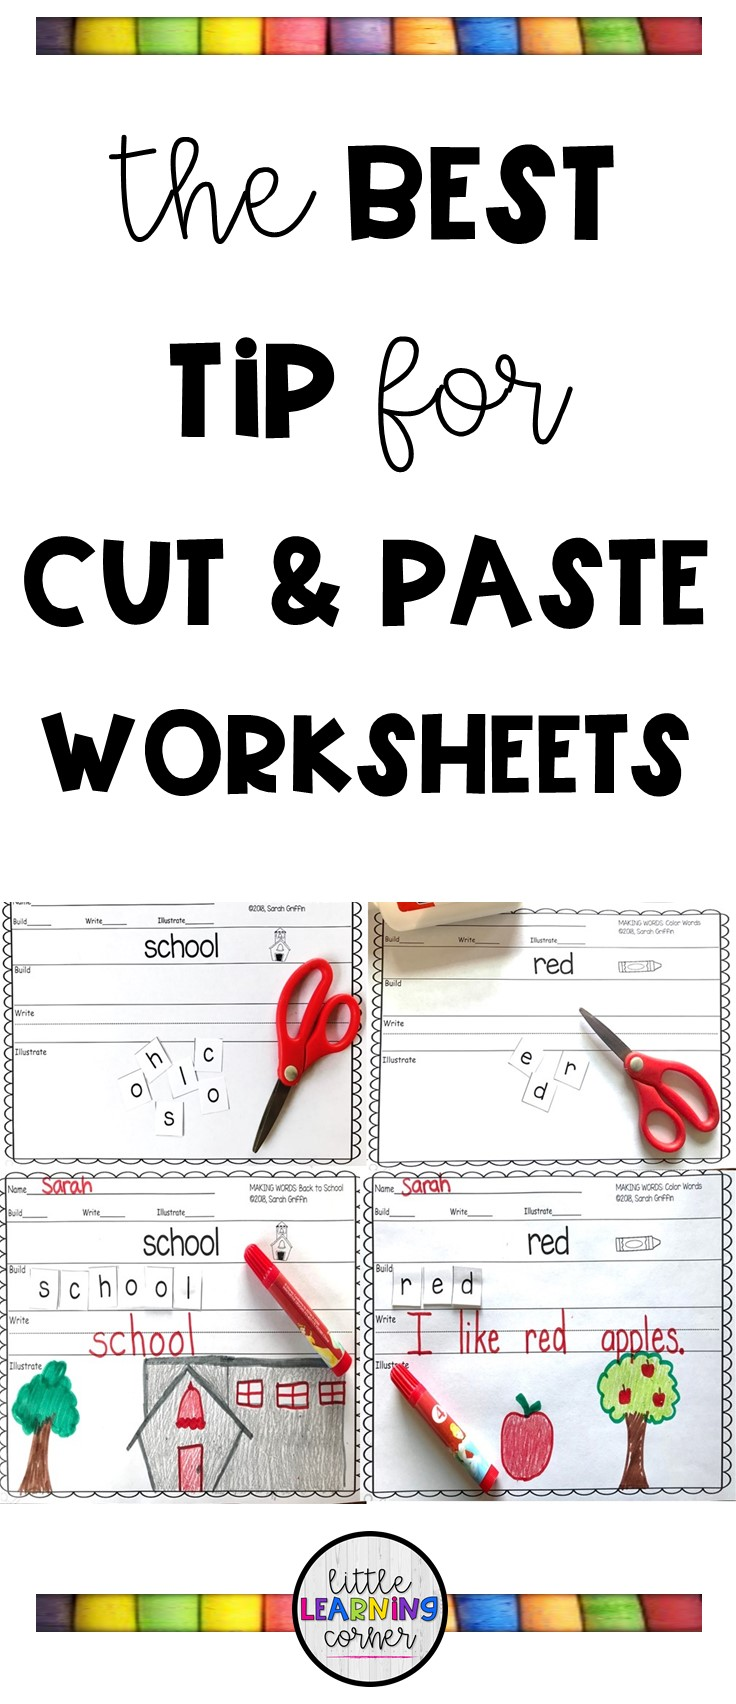 cut-and-paste-worksheets-pin